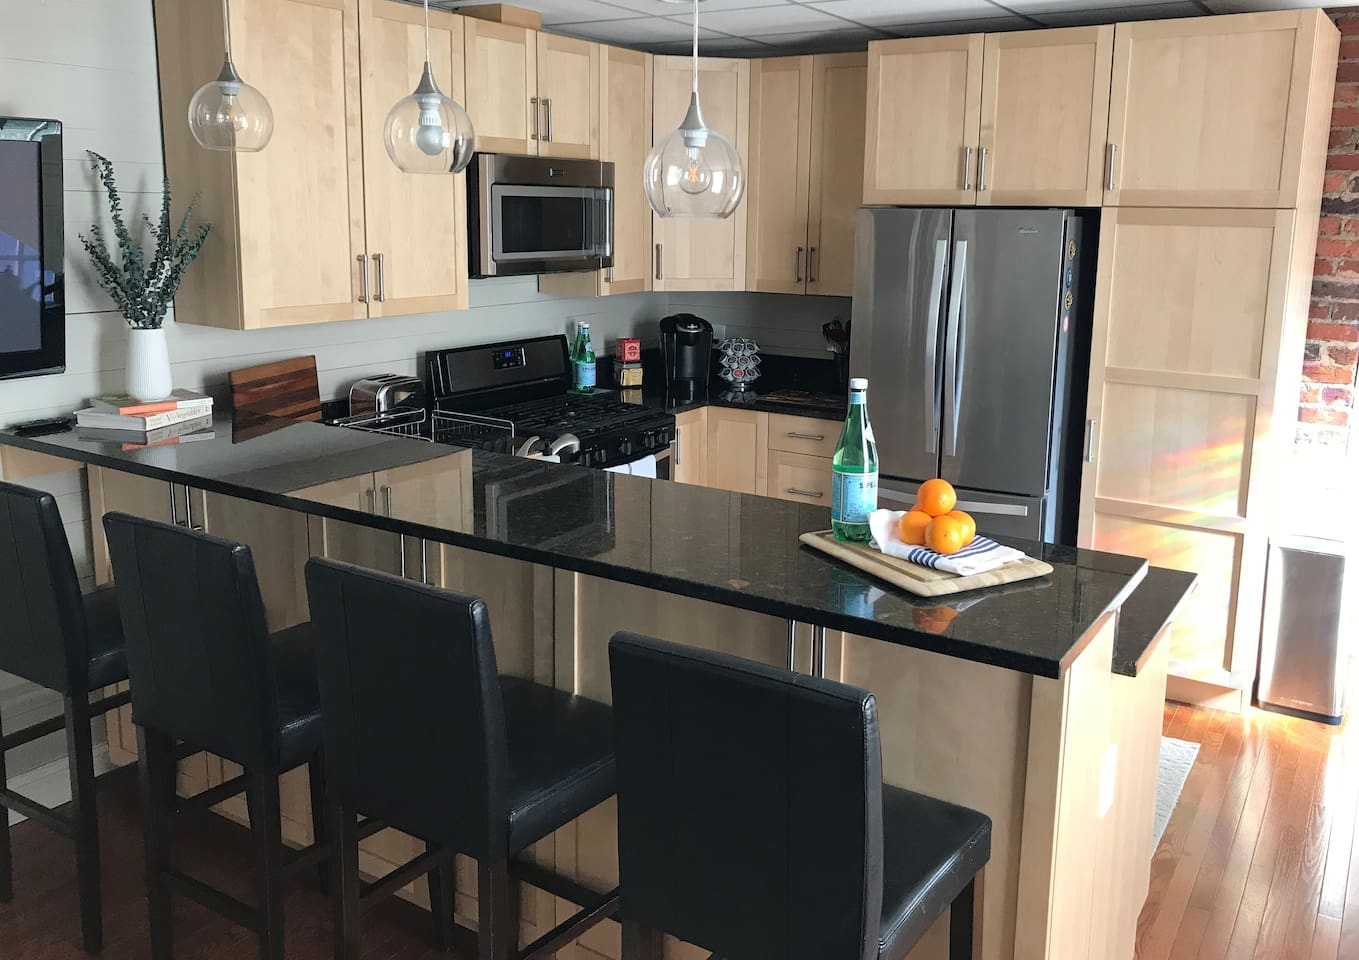 Welcome to the Downstairs Suite!  Here you will find everything needed to find your cool; whether for a long or short trip away from home.  We offer a full kitchen including, a large living room with an oversized sofa, 3 bedrooms, and a full bath.